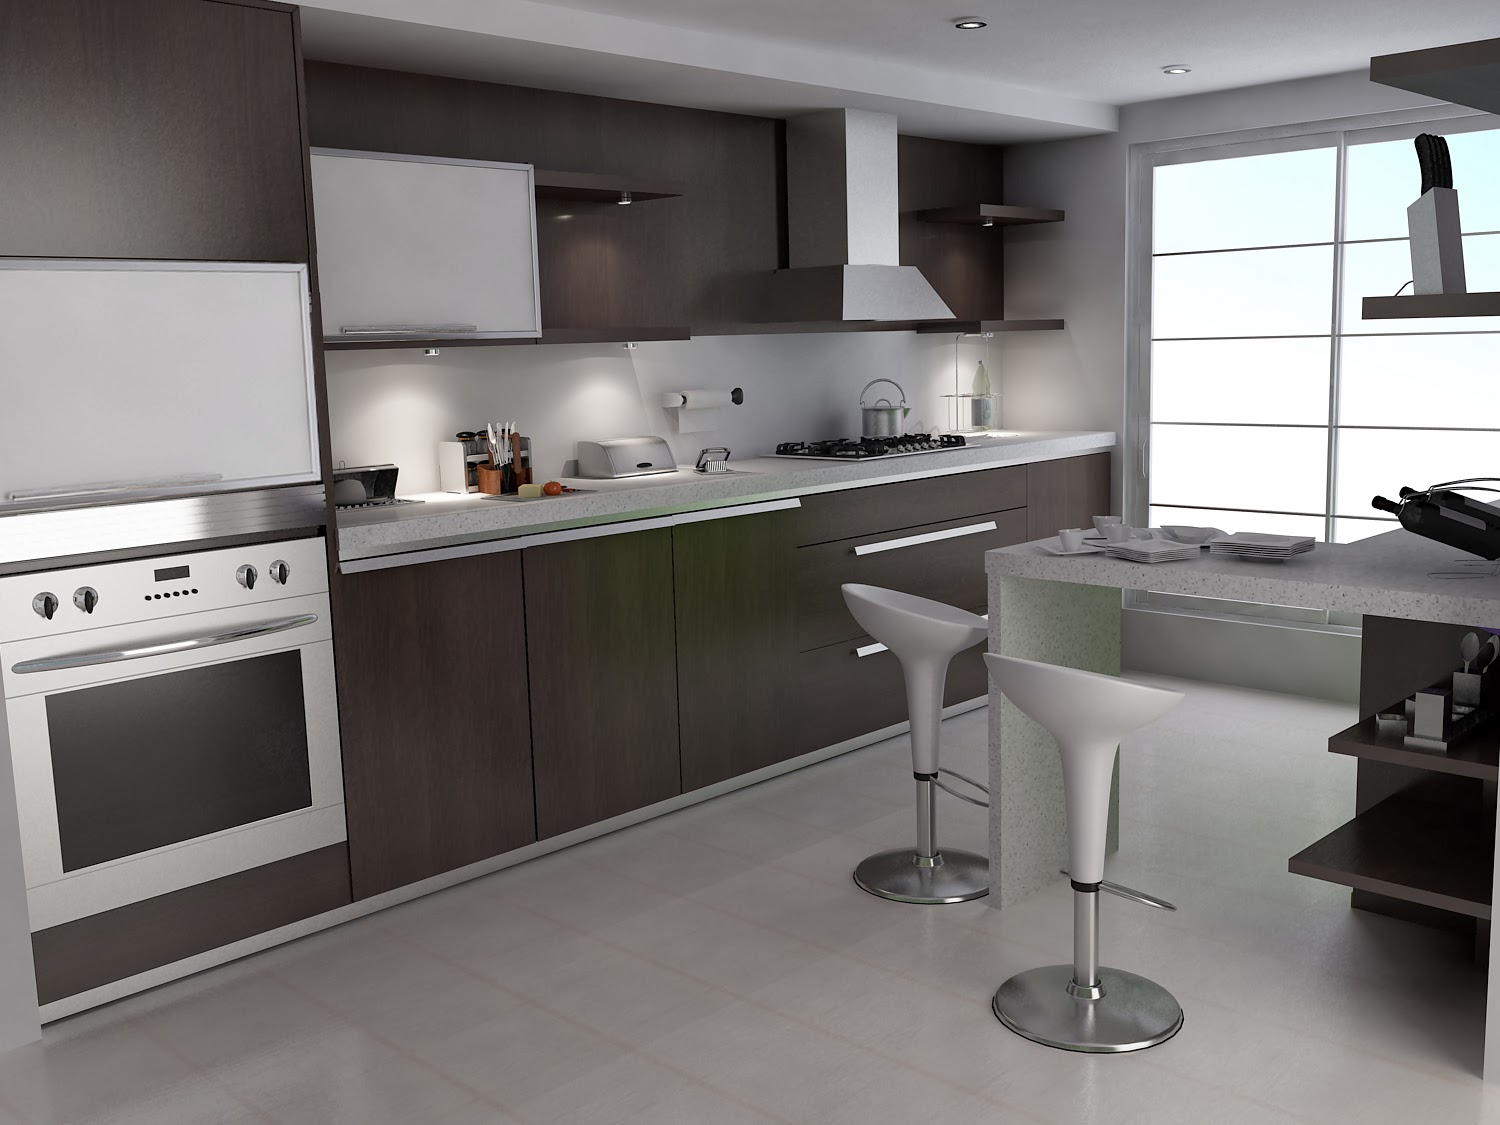 Small kitchen interior design model home interiors for Small kitchen models